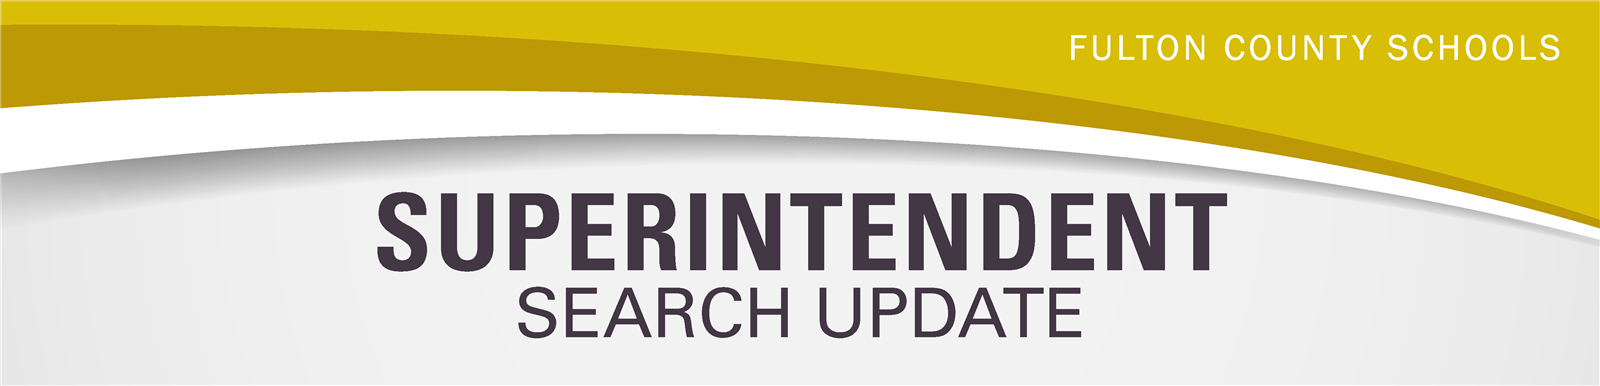 Superintendent Search Update